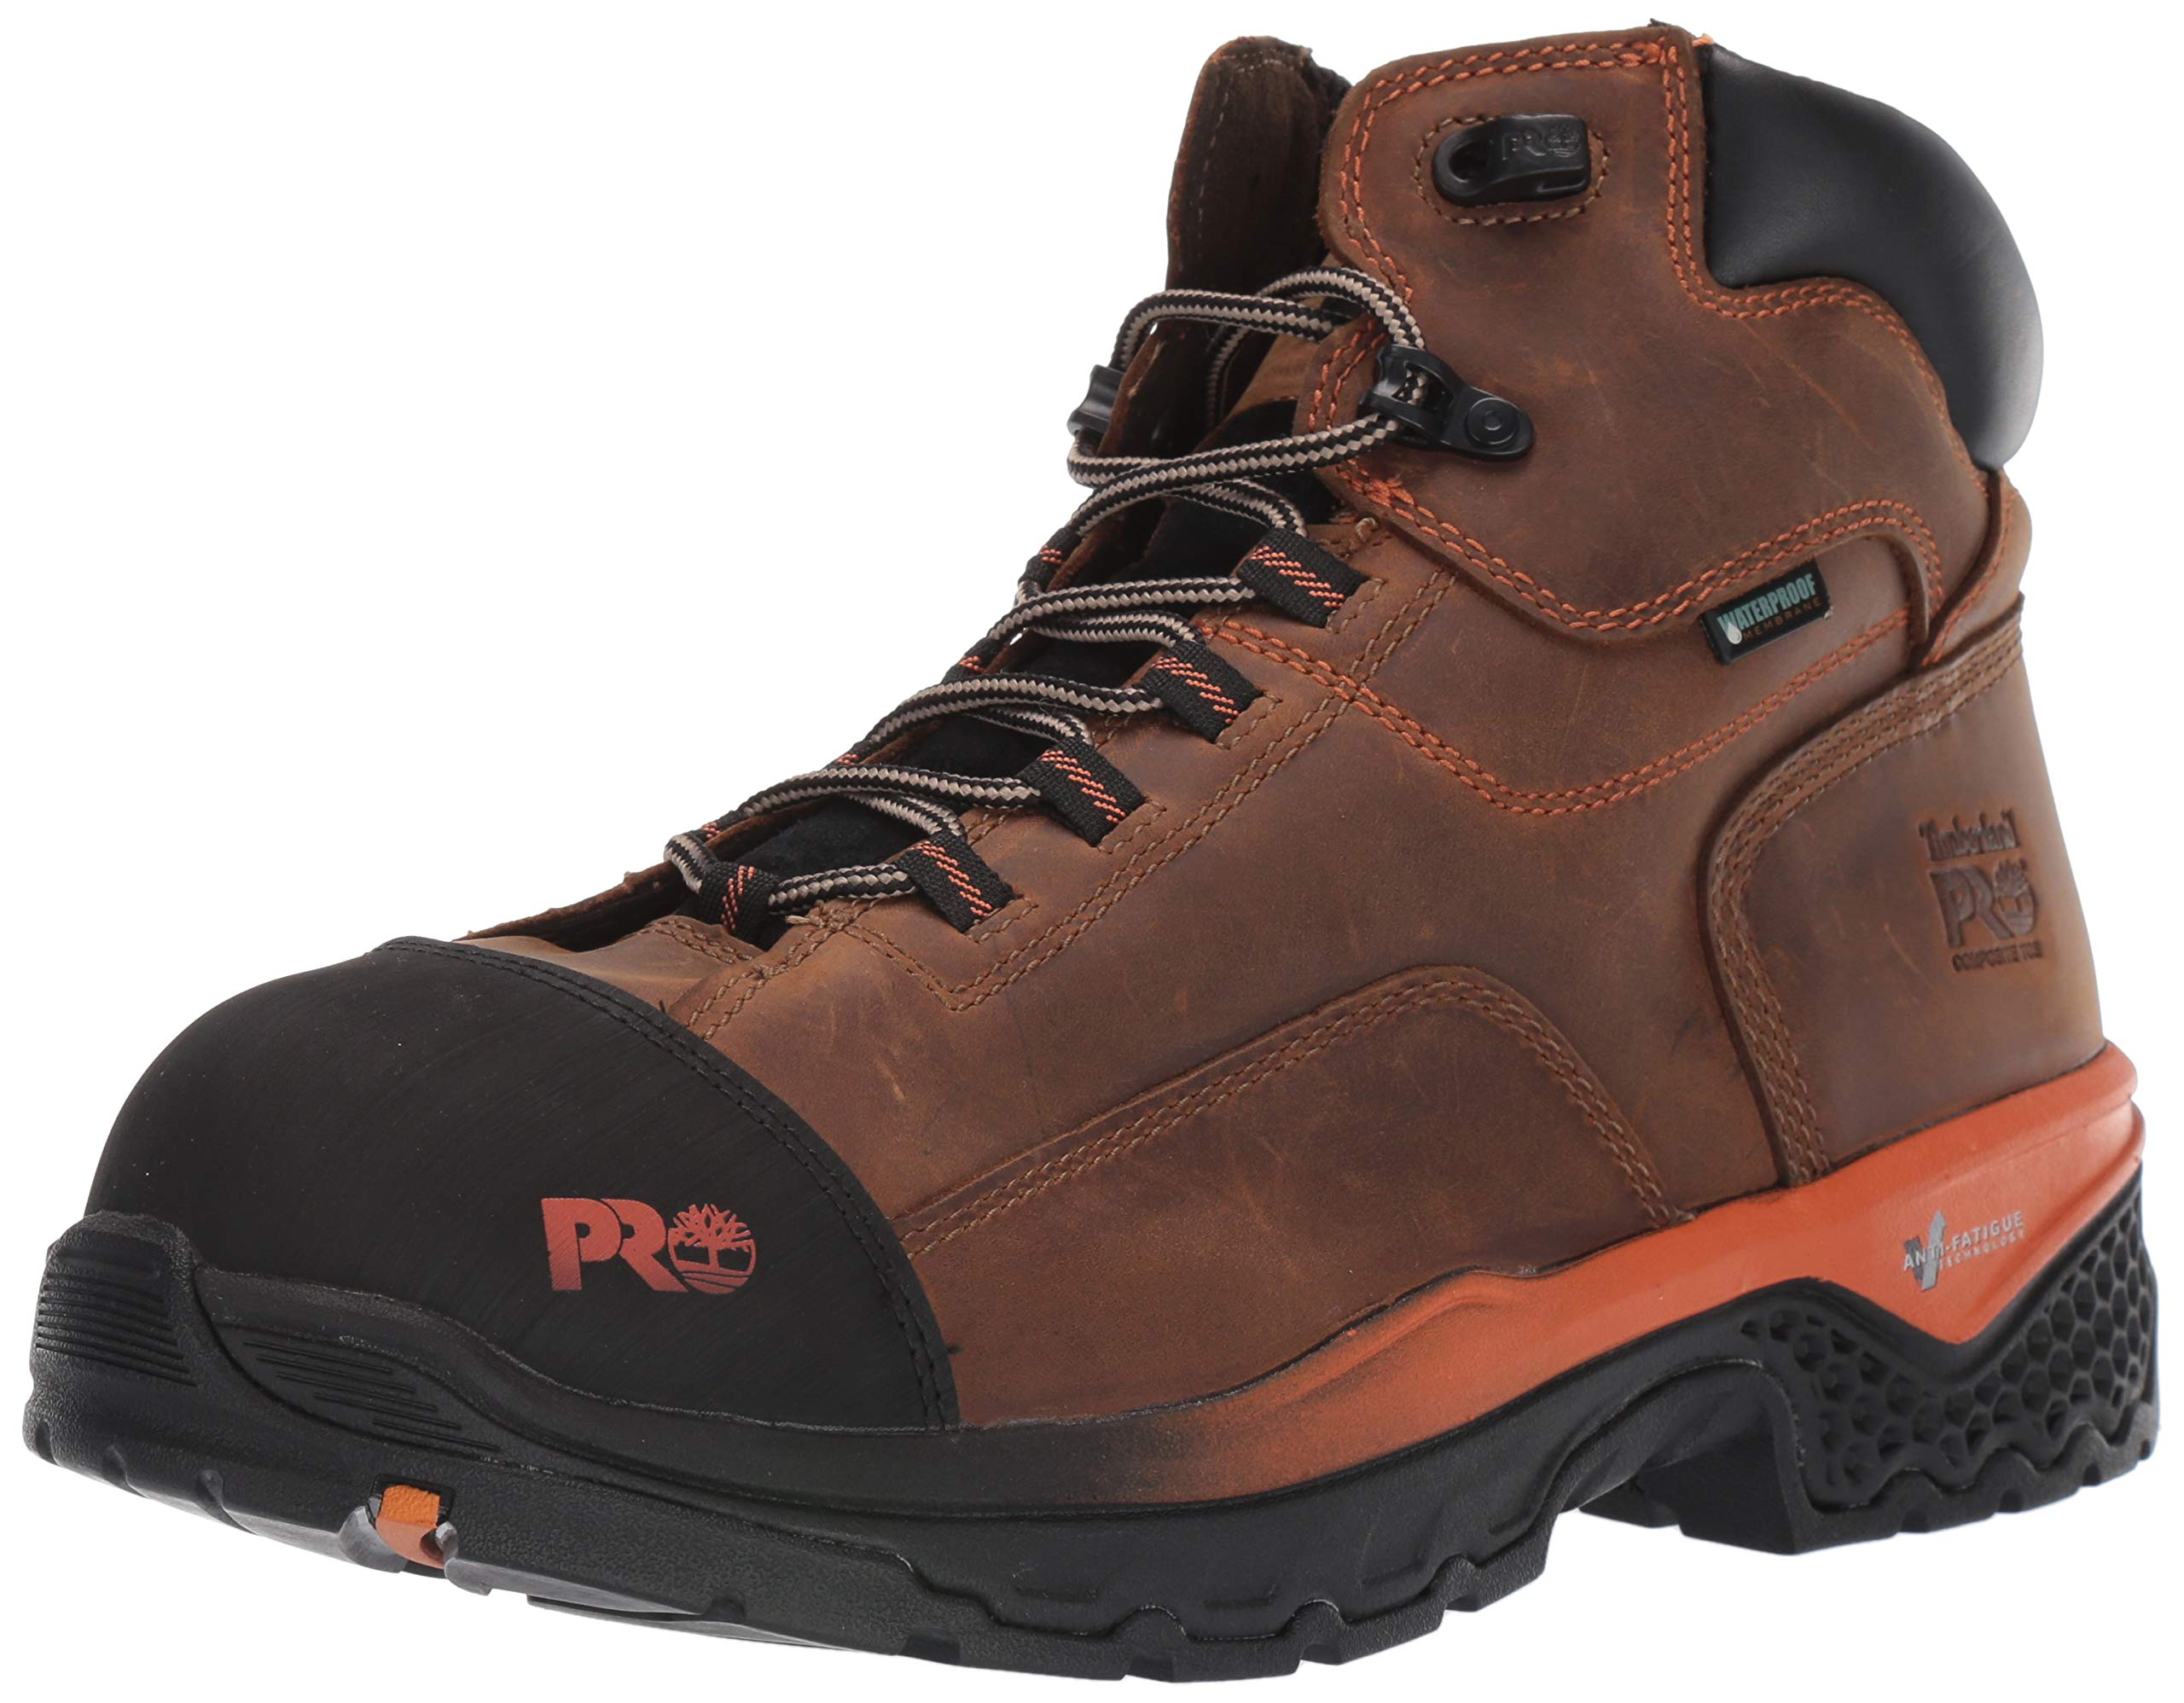 Timberland PRO Men's Bosshog 6'' Composite Toe Waterproof Industrial Boot, Brown, 11.5 W US by Timberland PRO